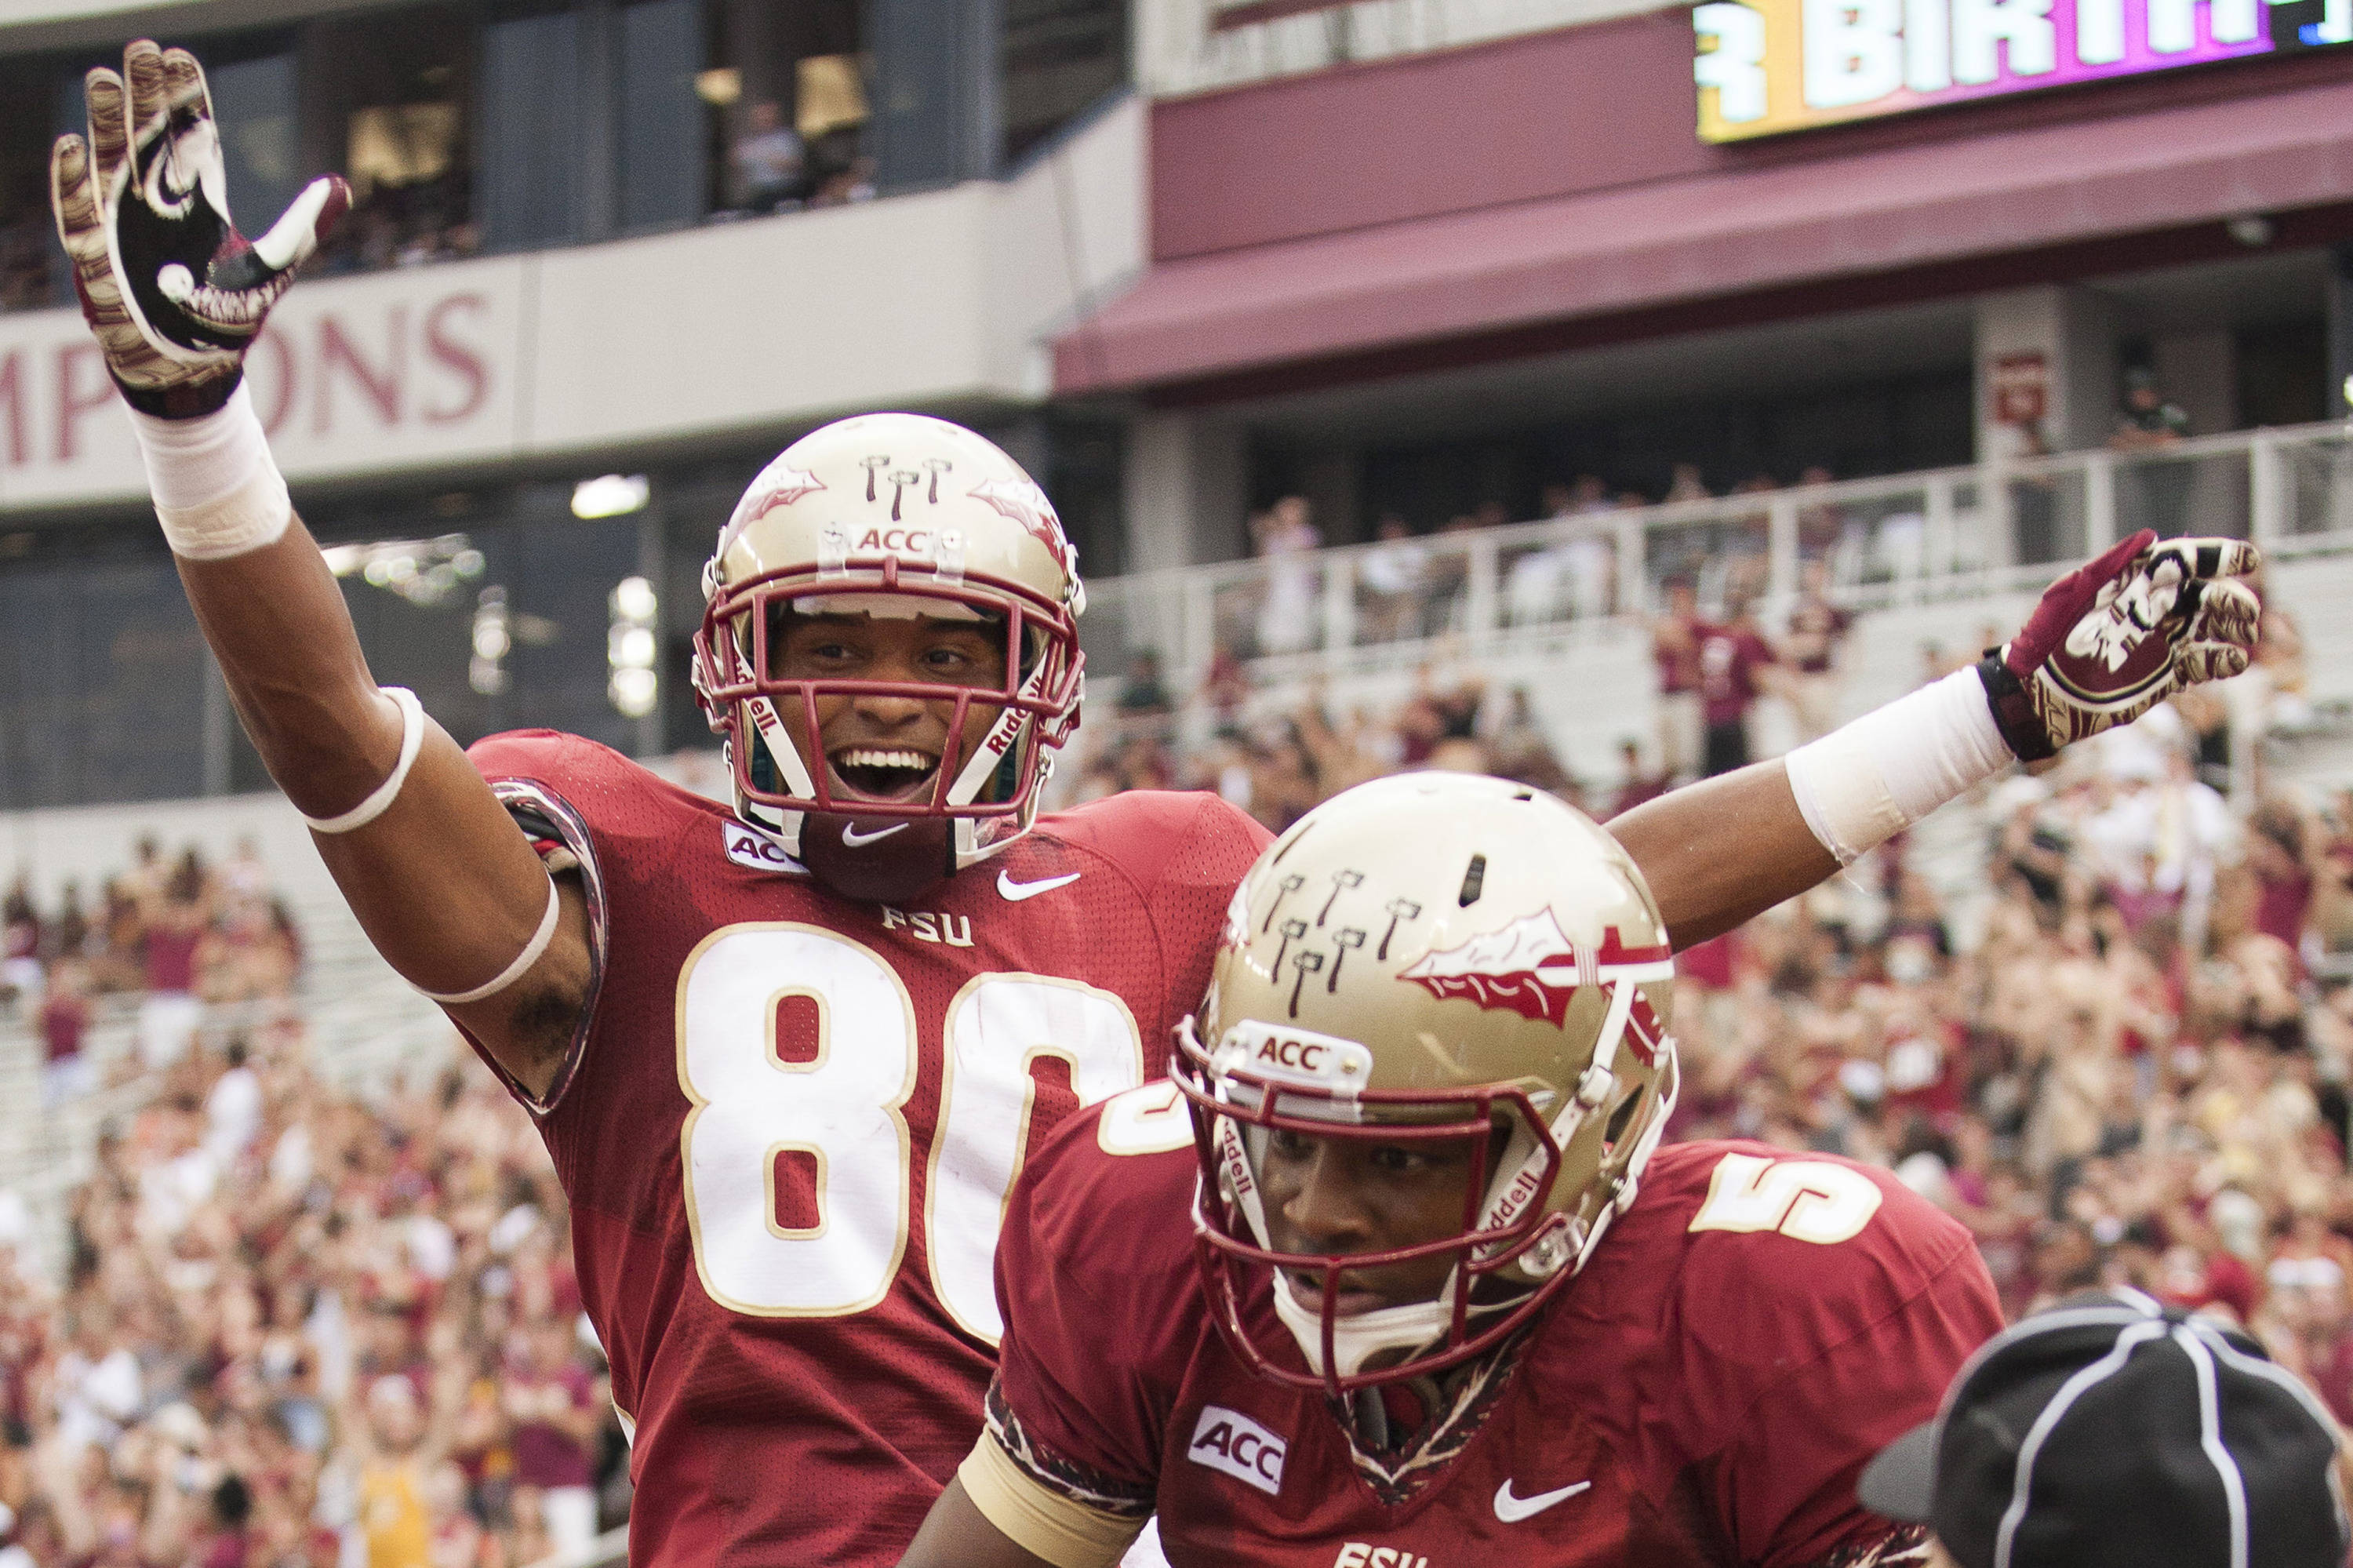 Rashad Greene (80) celebrates after a touchdown during FSU's 62-7 win over Nevada on Saturday, Sept 14, 2013 in Tallahassee, Fla.